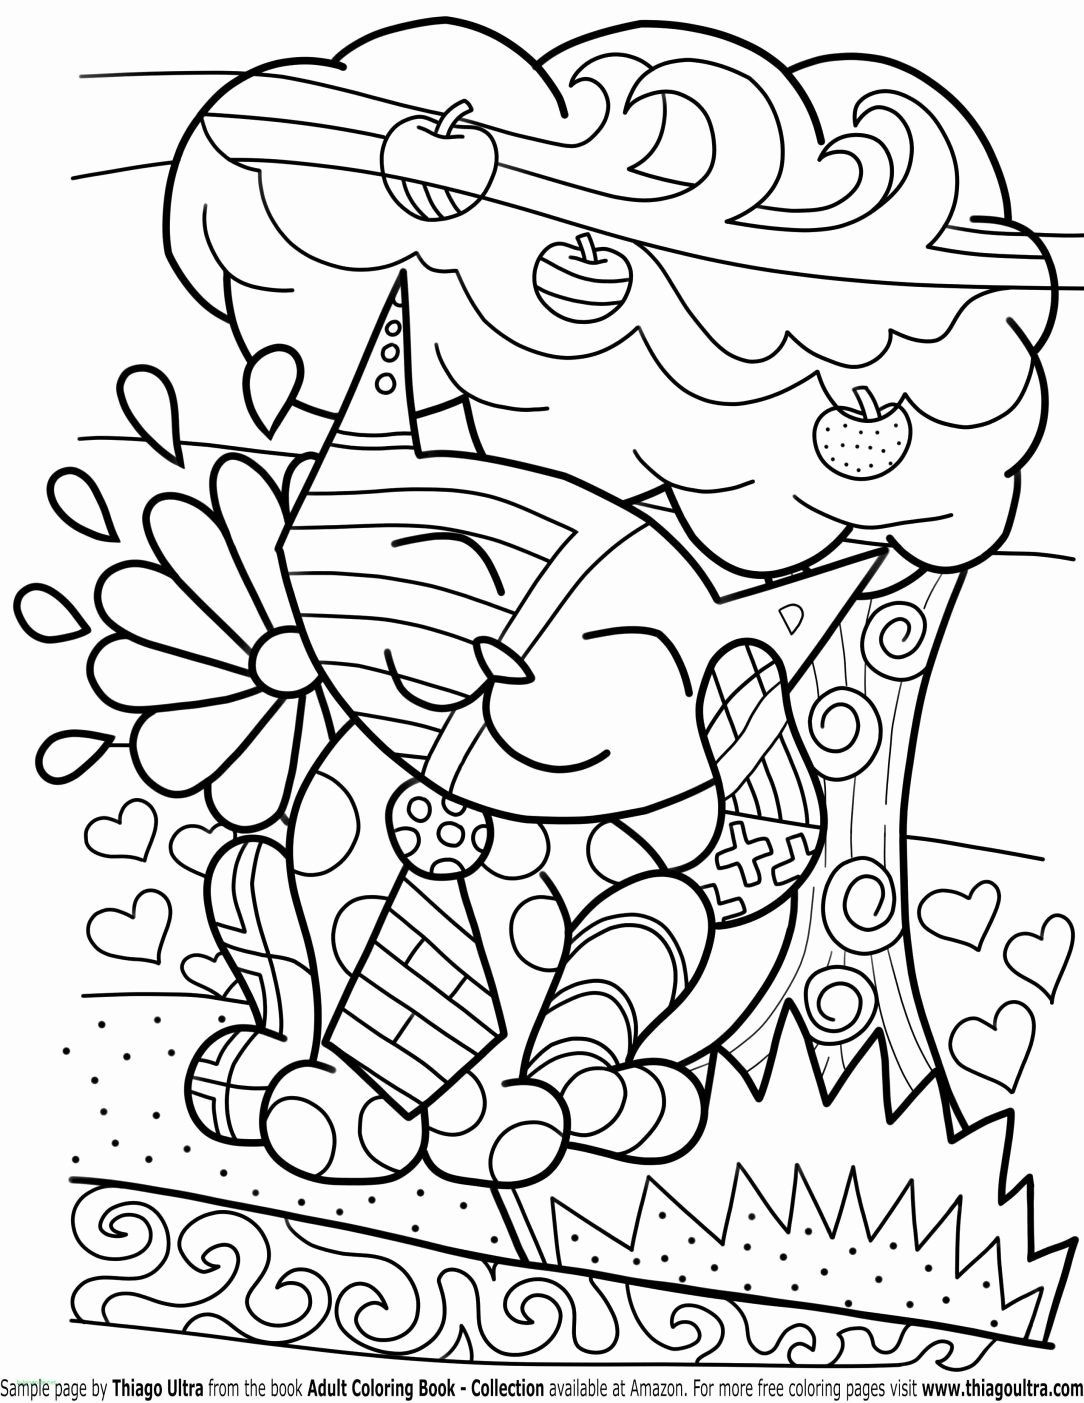 Alphabet Coloring Book Printable Pdf Elegant Coloring Ideas 62 Tremendous Free Coloring Sheets P Bird Coloring Pages Mandala Coloring Pages Fall Coloring Pages